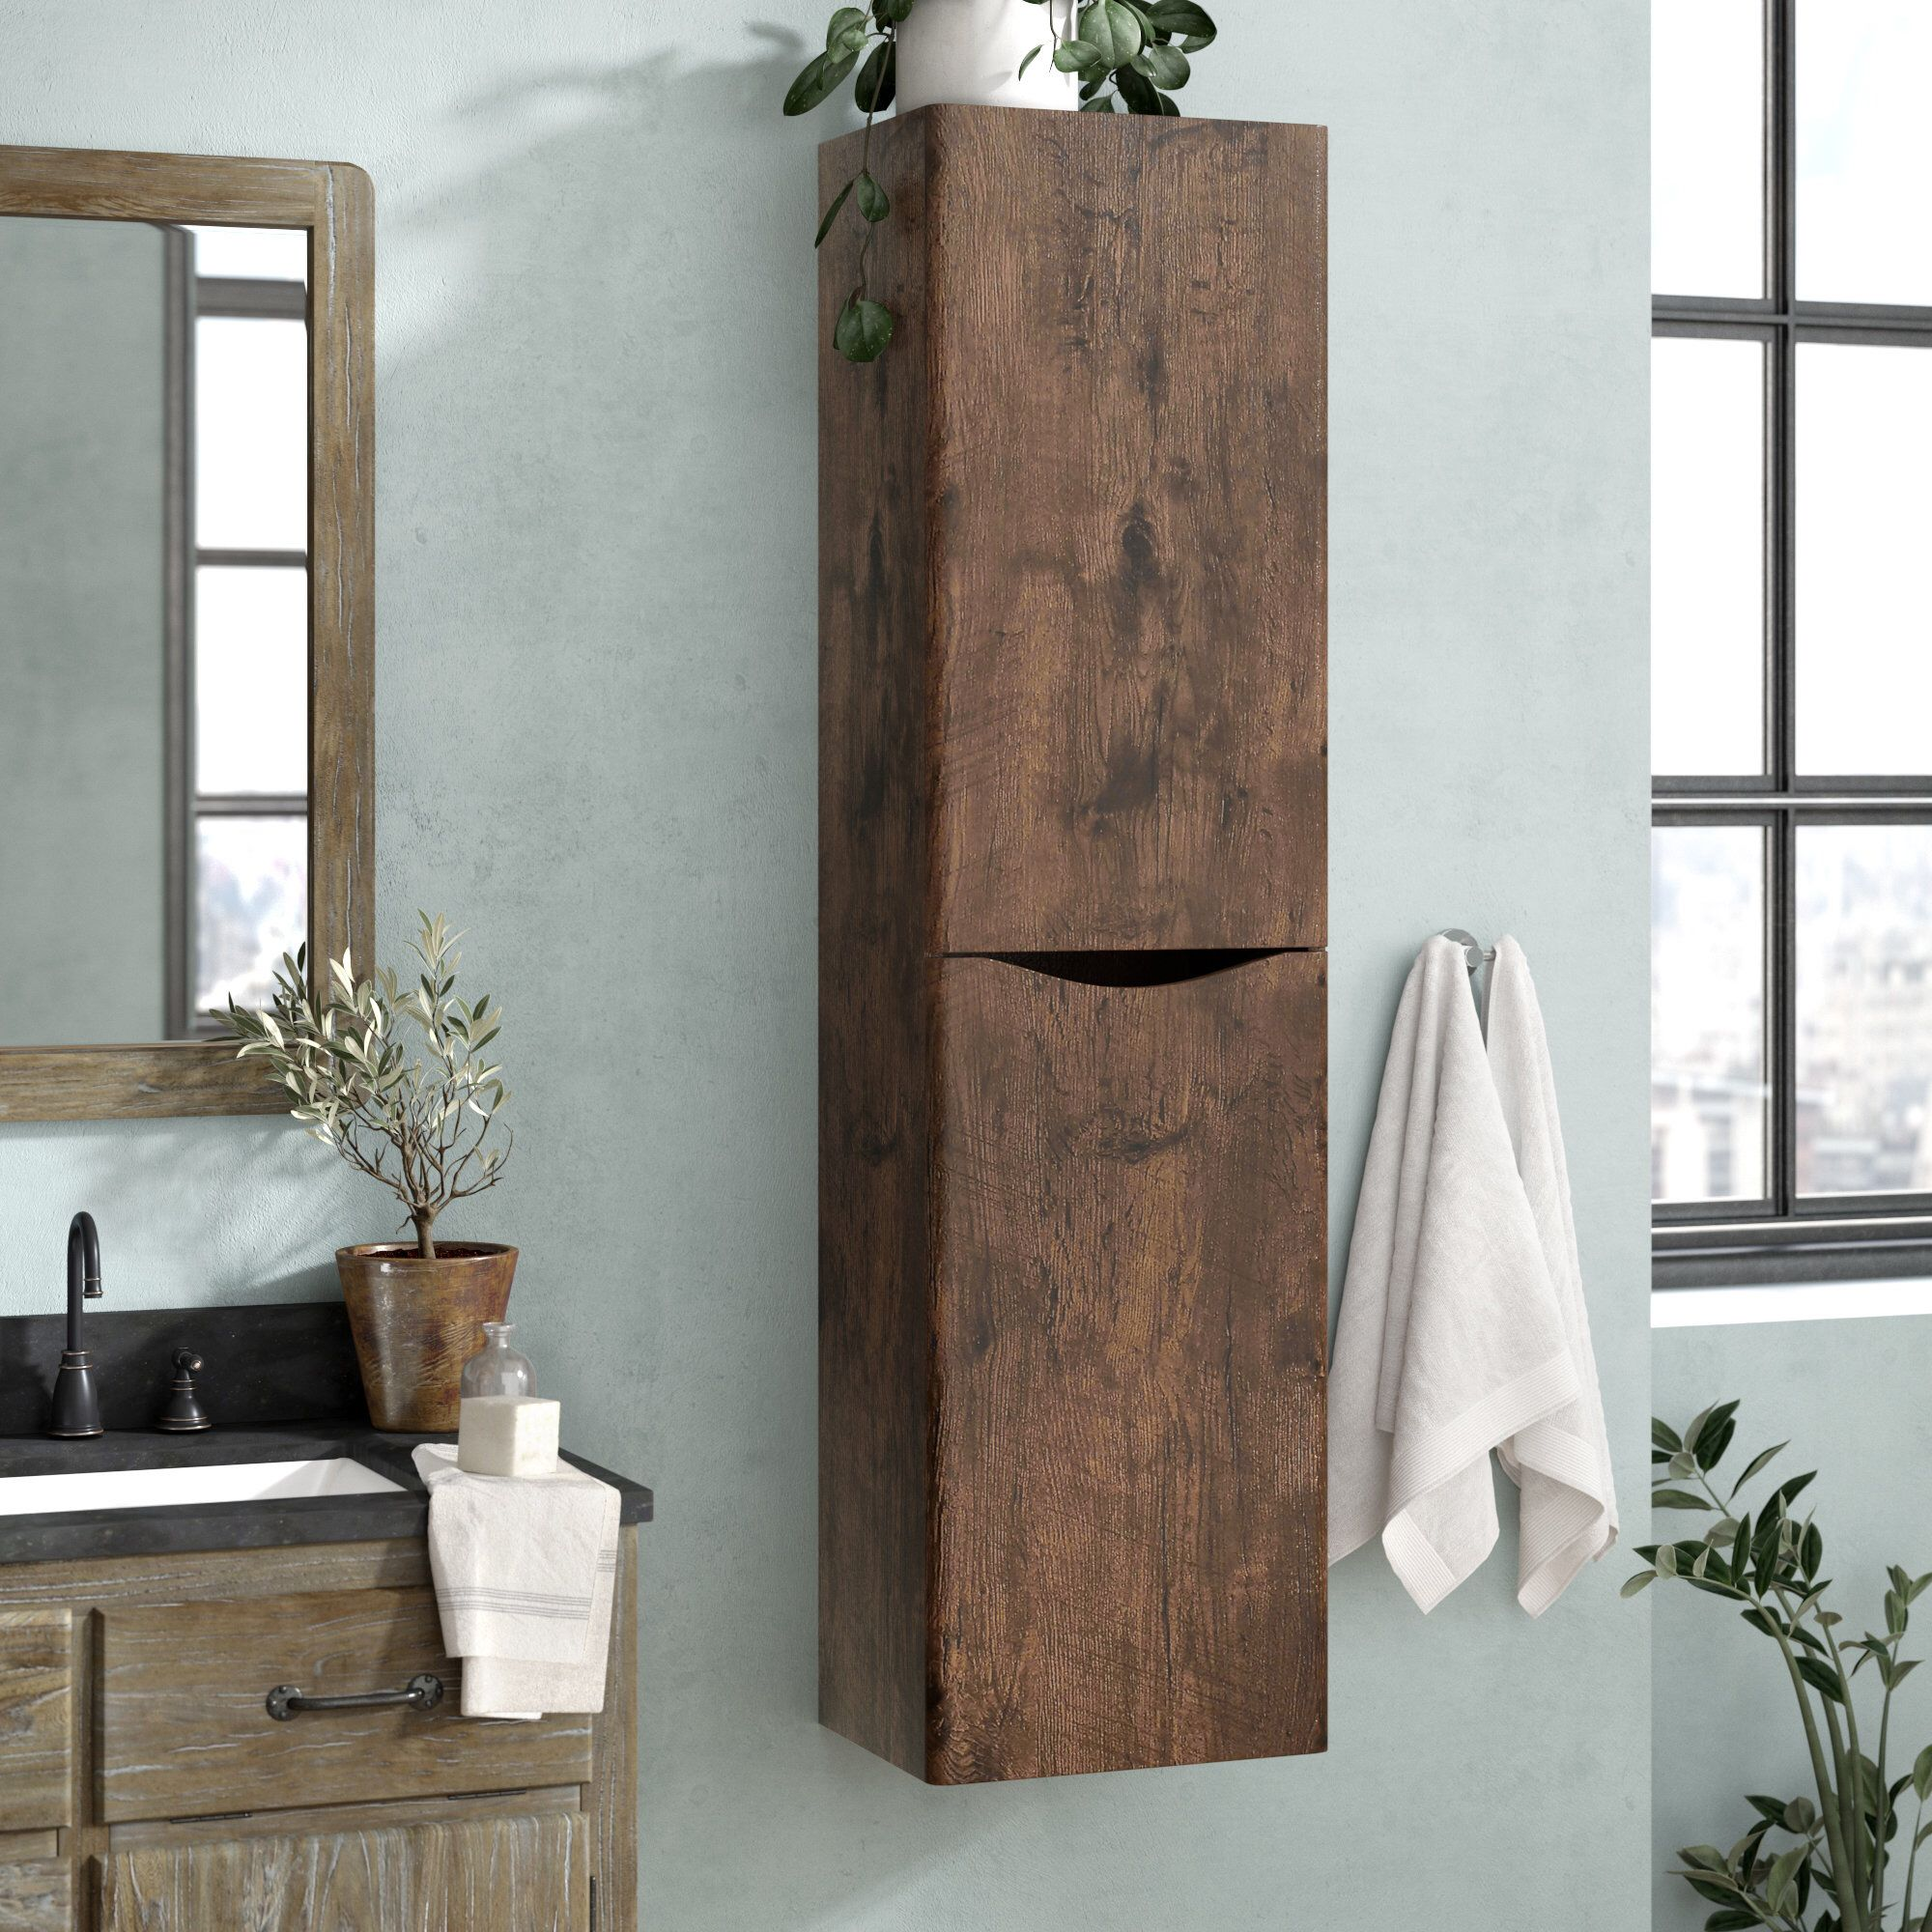 Blondene 15 7 W X 59 1 H Wall Mounted Cabinet Cabinet Shelving Wall Mounted Cabinet Cabinet [ 2000 x 2000 Pixel ]